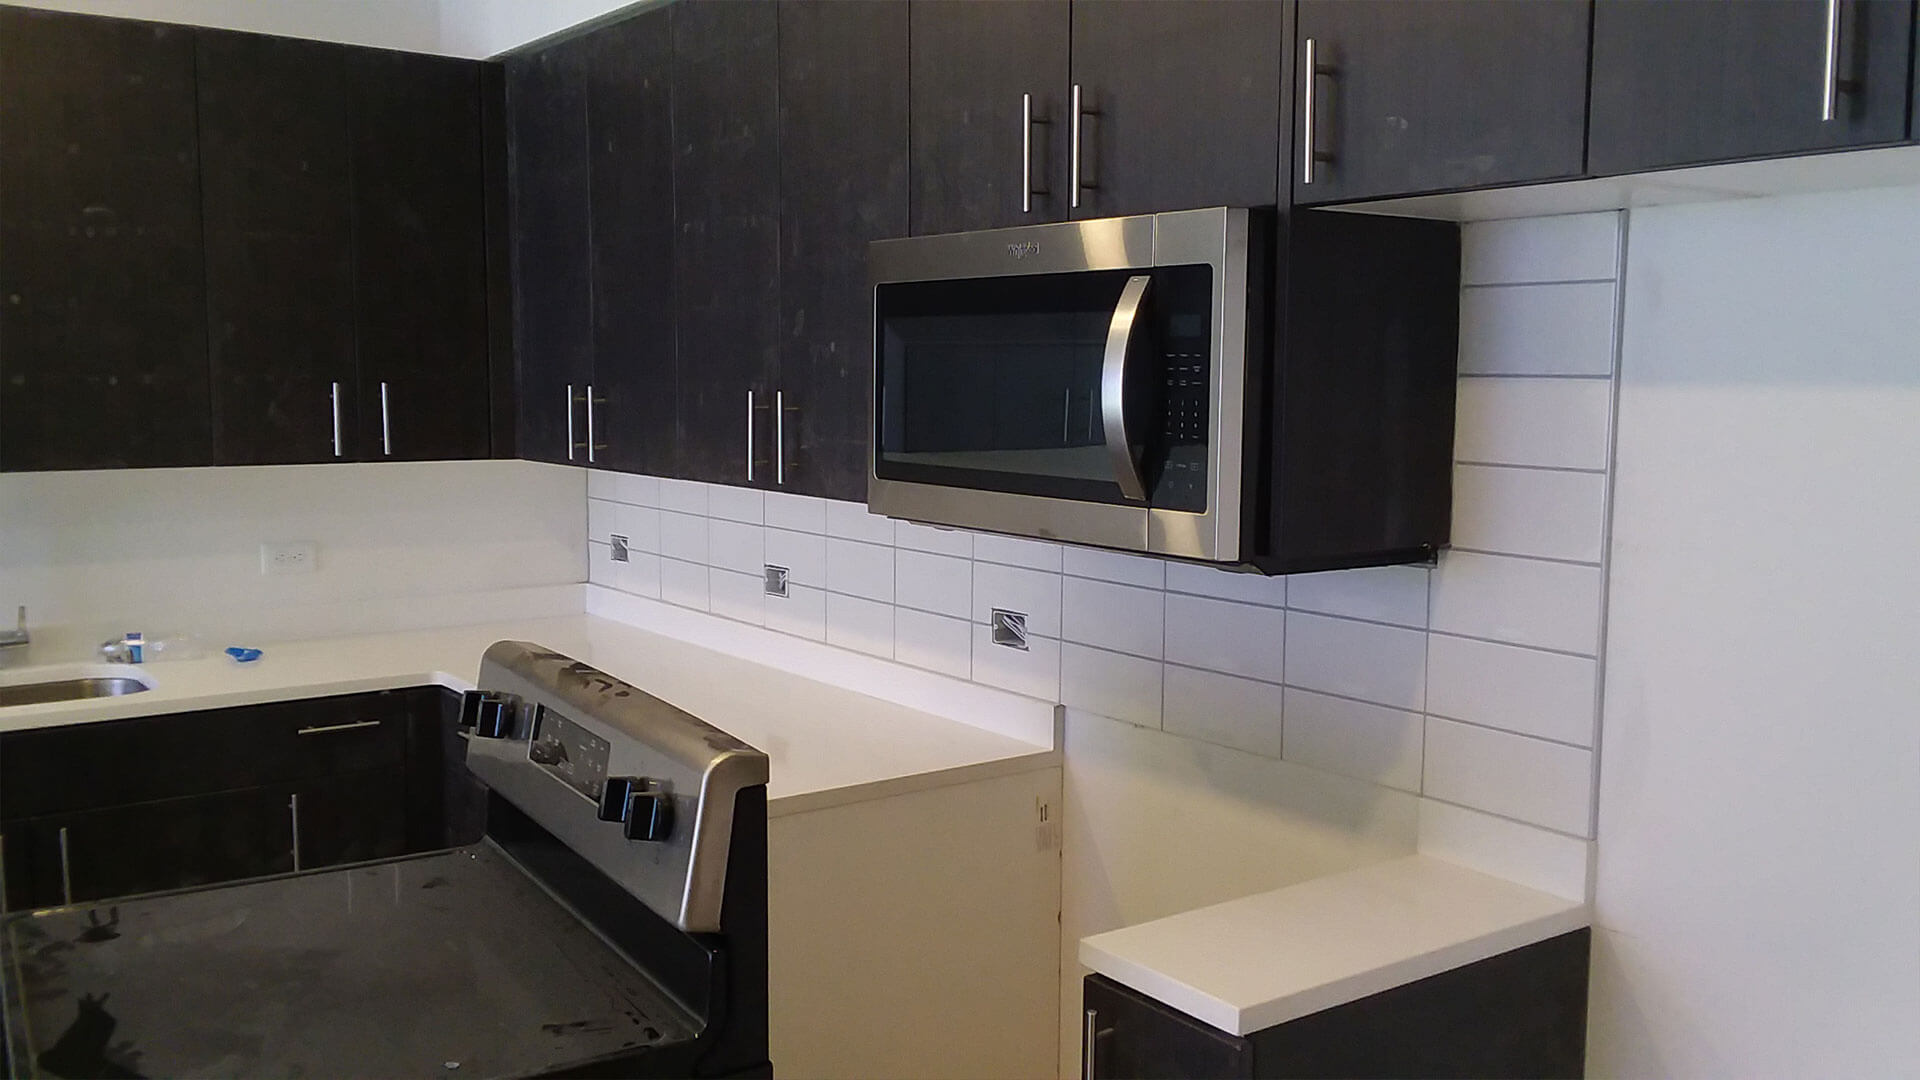 A Microwave and a Stove in the Kitchen of an Apartment at Stateside